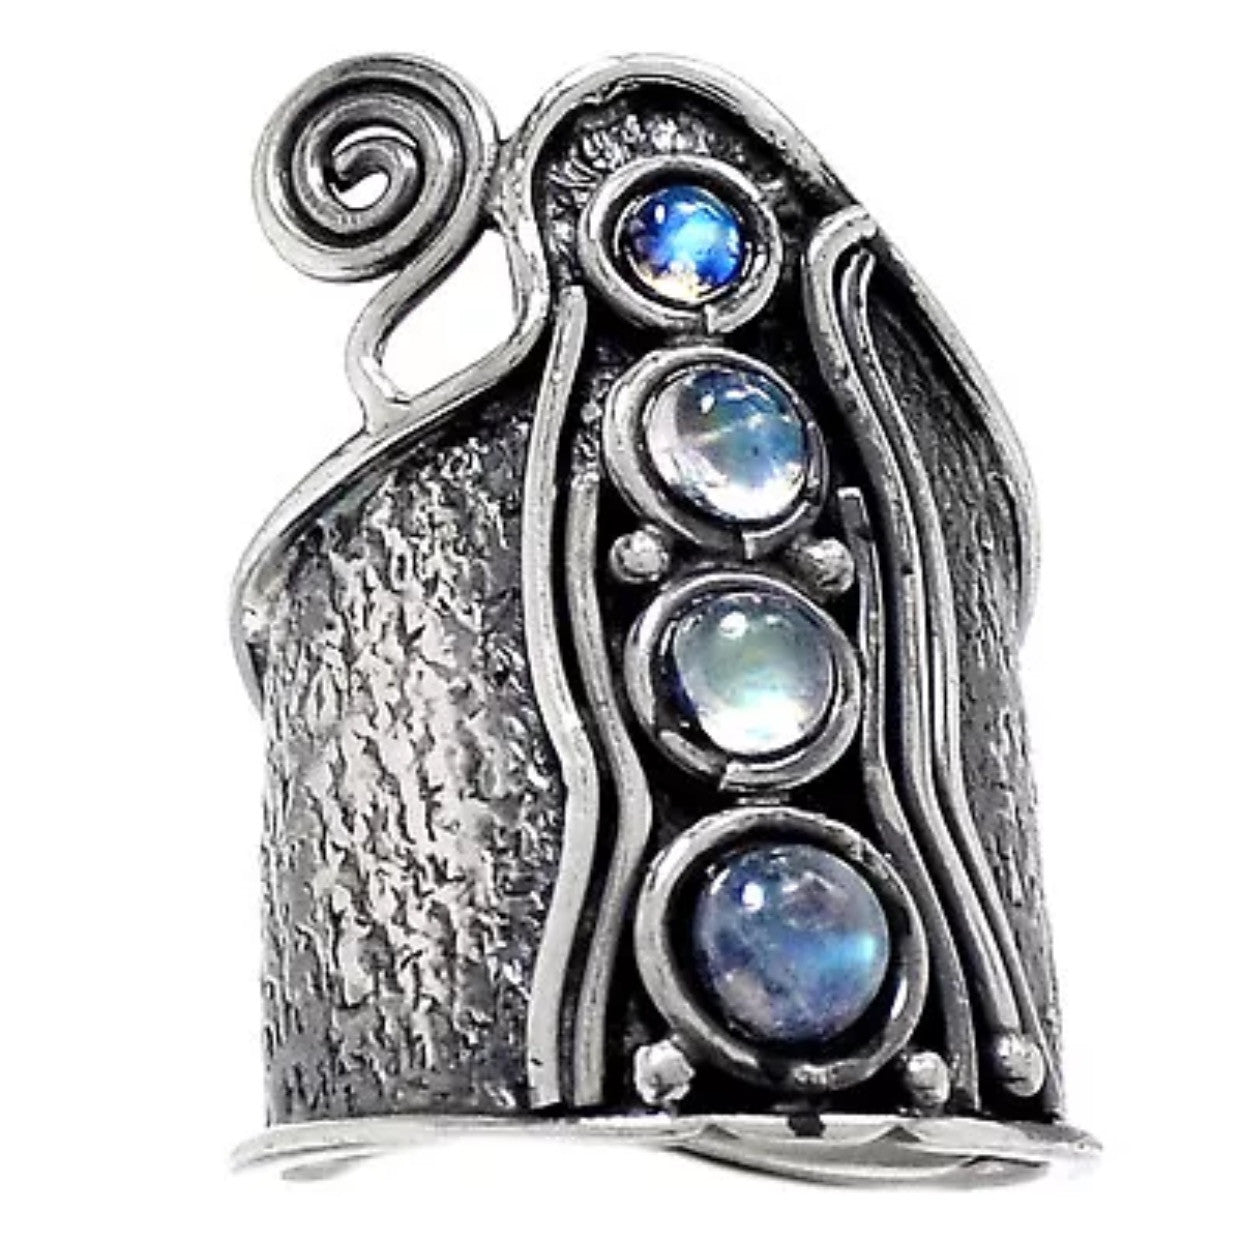 Moonstone Sterling Silver Whimsical Band Ring - Keja Designs Jewelry